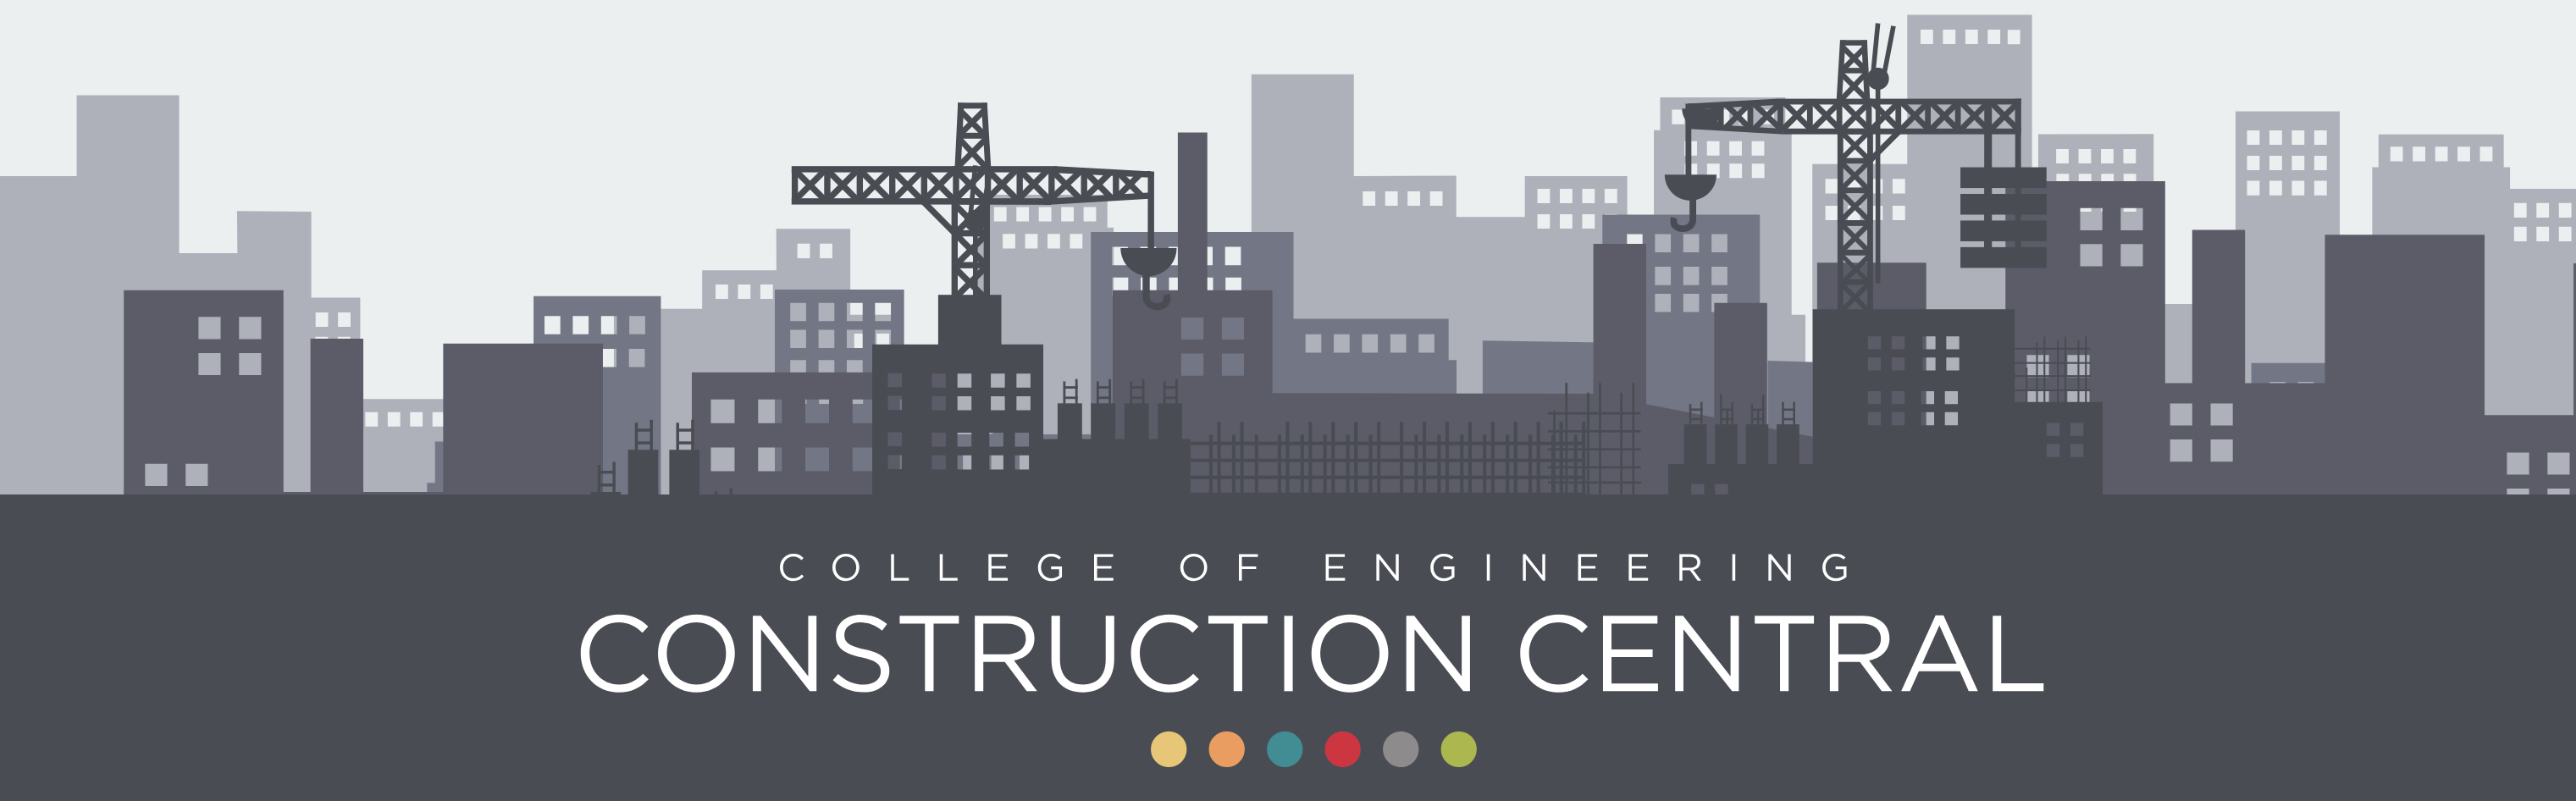 See the Construction Central website for details on SEC and Link Renovations